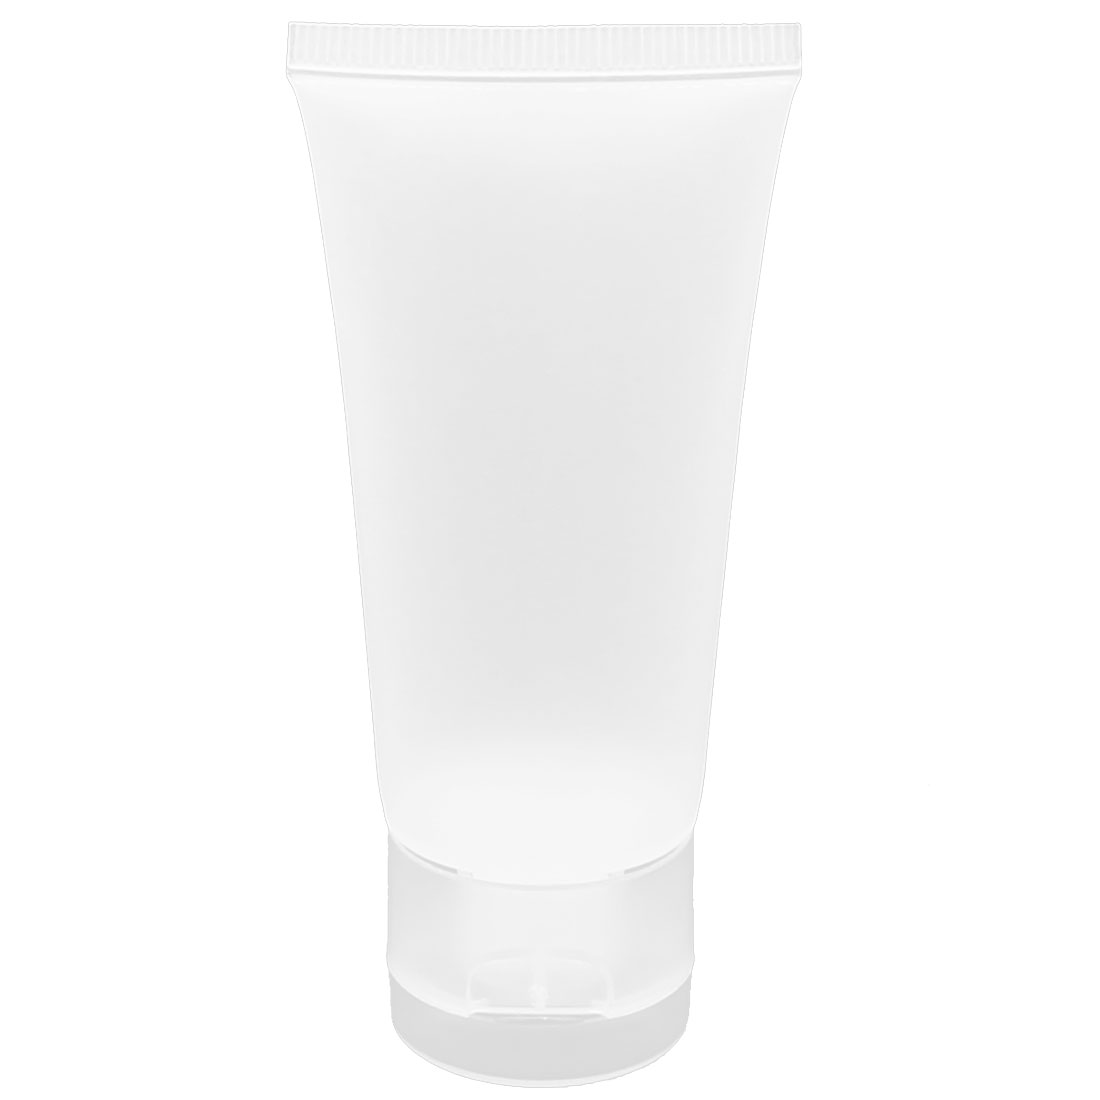 Camping Plastic Makeup Cosmetic Face Skin Cream Empty Bottle Holder Container 30g Clear